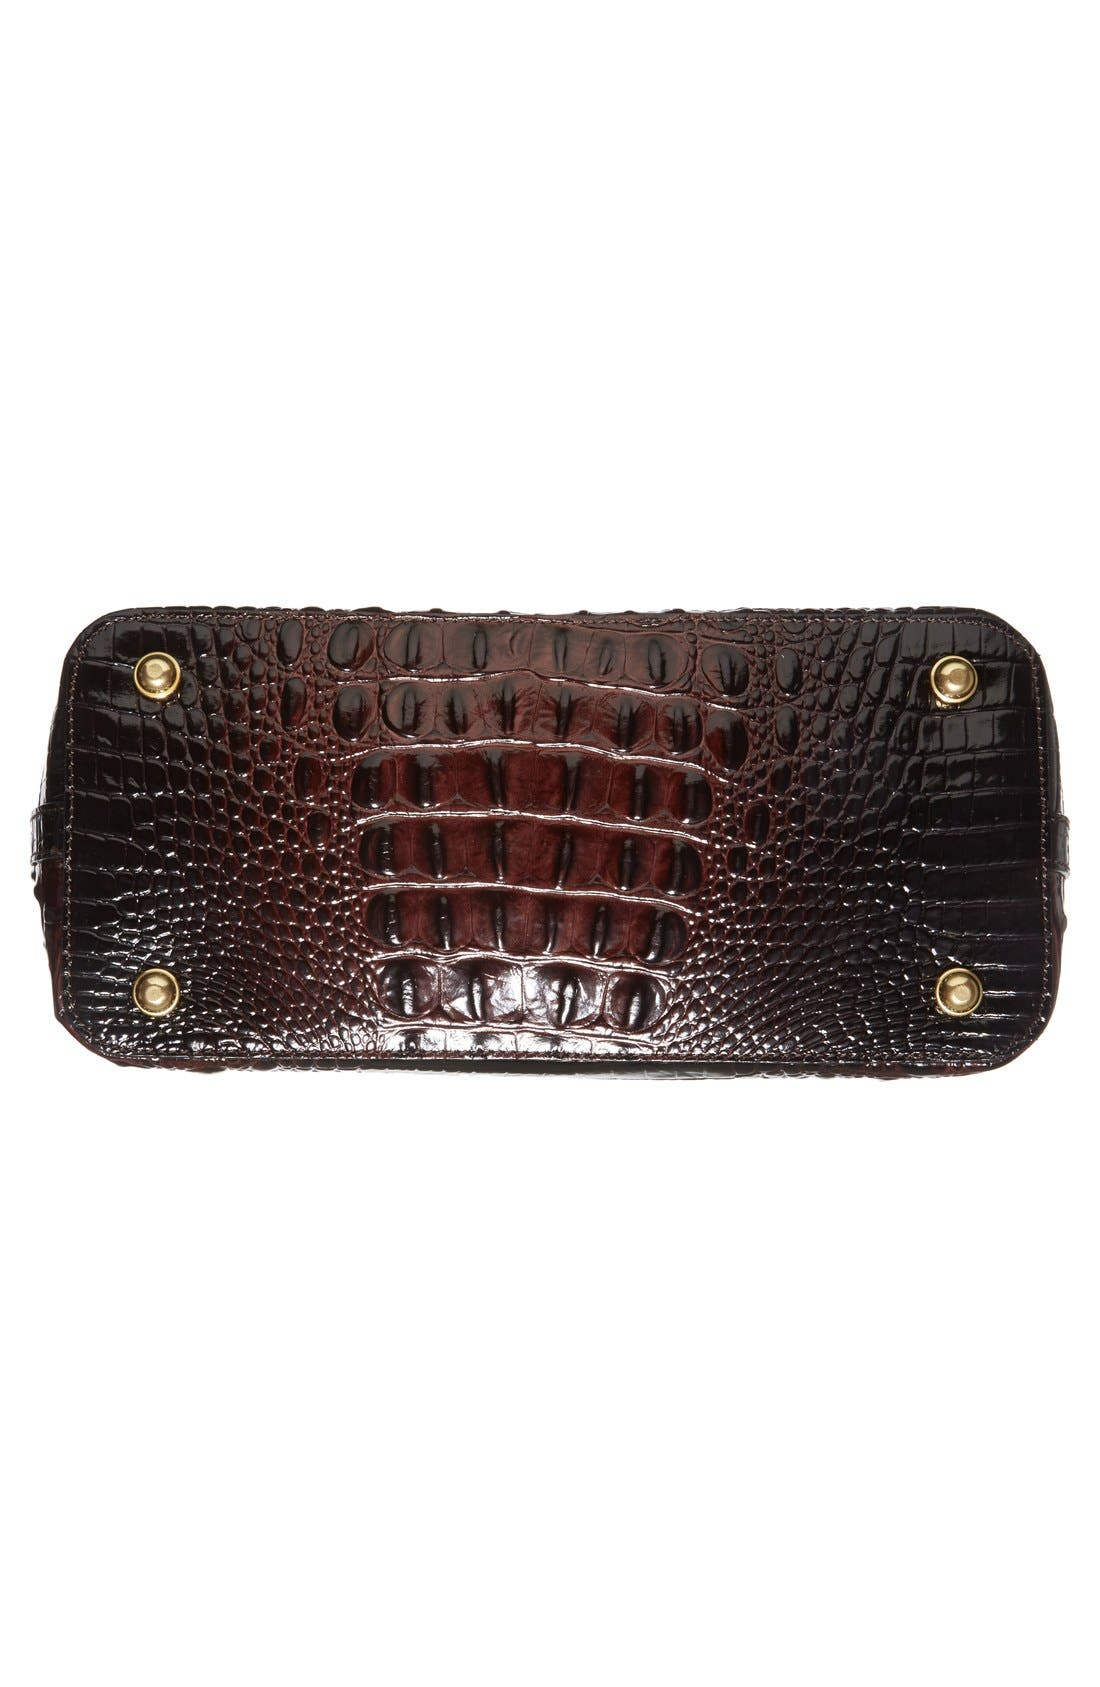 'Medium Duxbury' Croc Embossed Leather Satchel,                             Alternate thumbnail 36, color,